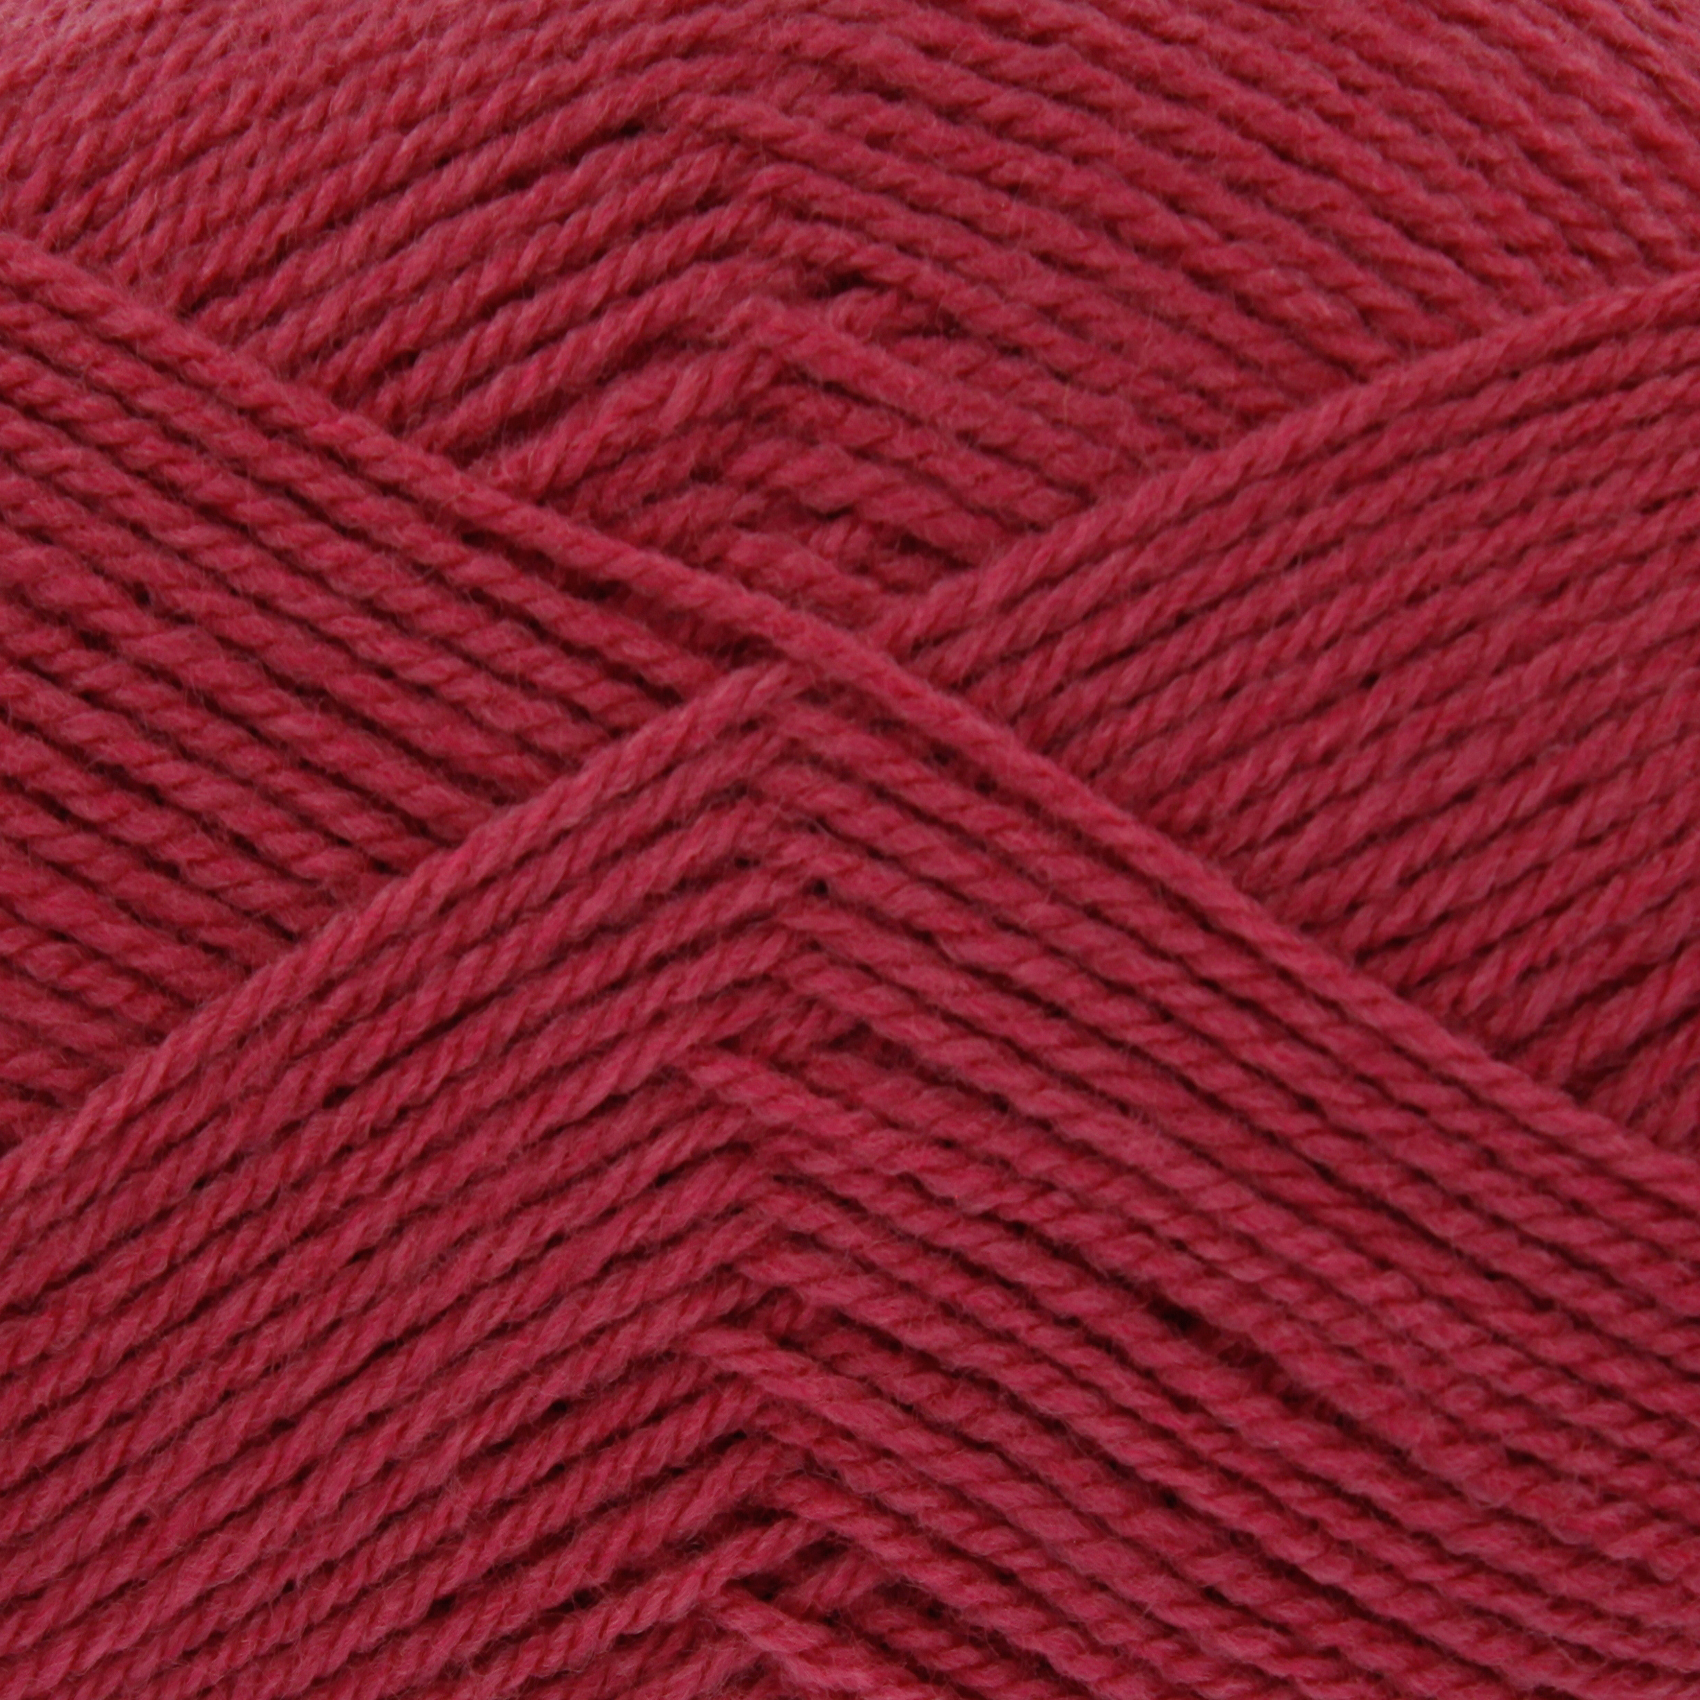 Double Knit 100g Ball Comfort Baby DK Yarn Wool King Cole Free Knitting Patte...